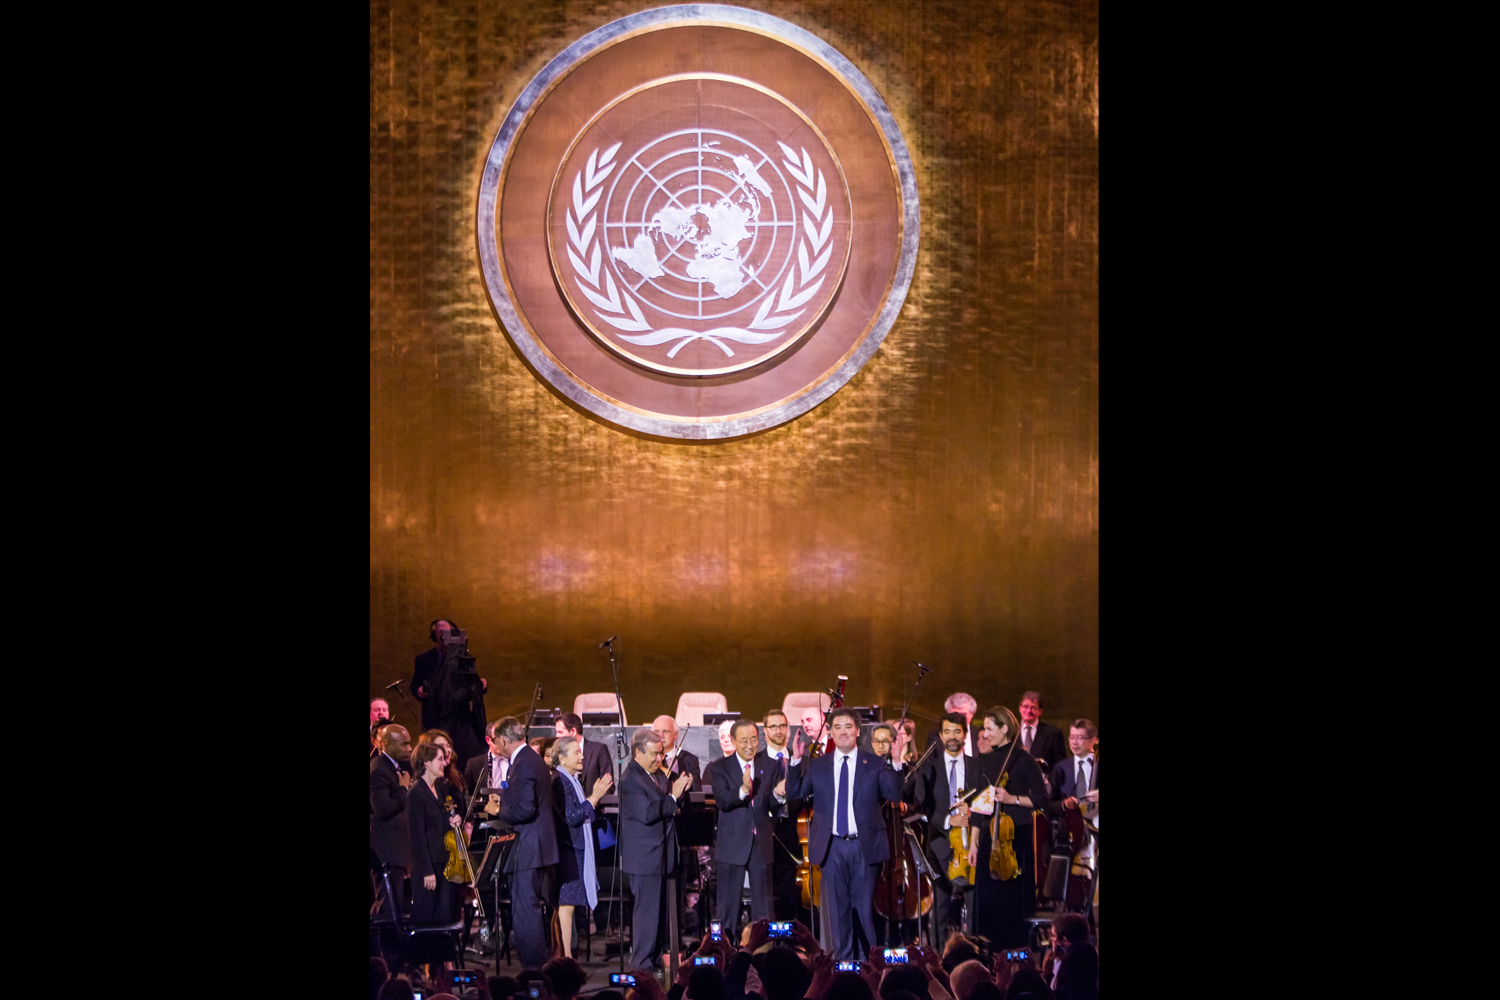 """Secretary-General Ban Ki-moon and Secretary-General-Designate António Guterres were among those who joined Alan Gilbert and the Orchestra onstage at the U.N. concert. """"I am extremely grateful to Mr. Gilbert and the New York Philharmonic for offering a concert in celebration of the work of the United Nations over the past decade,"""" Ban Ki-moon had said when the concert was announced, adding that he welcomed """"this globally renowned orchestra for this very special event which underscores the power of music to inspire and unite."""""""